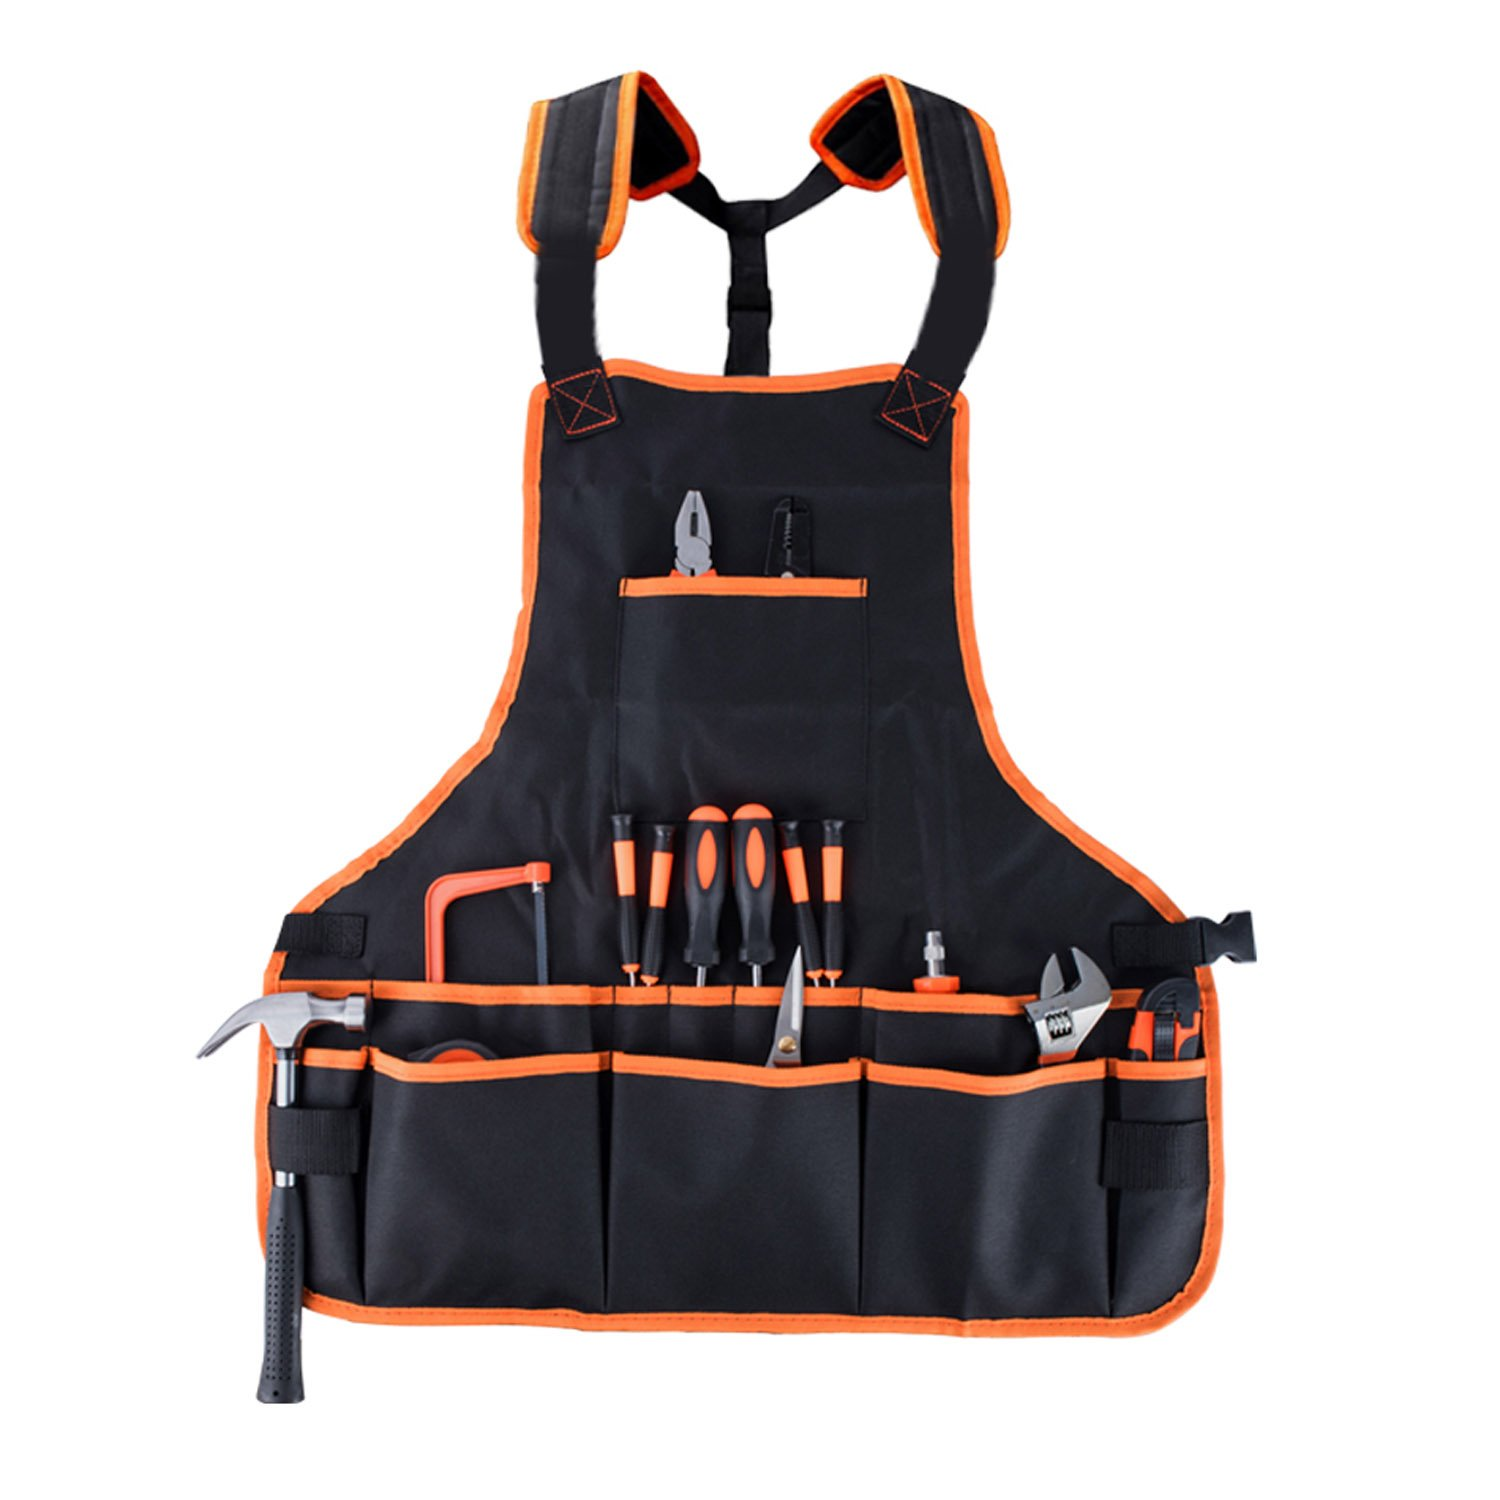 Autoark Work Tool Apron with 16 Pockets,Waterproof & Protective,Fits Men & Women,Fully Adjustable,Black,ATT-001